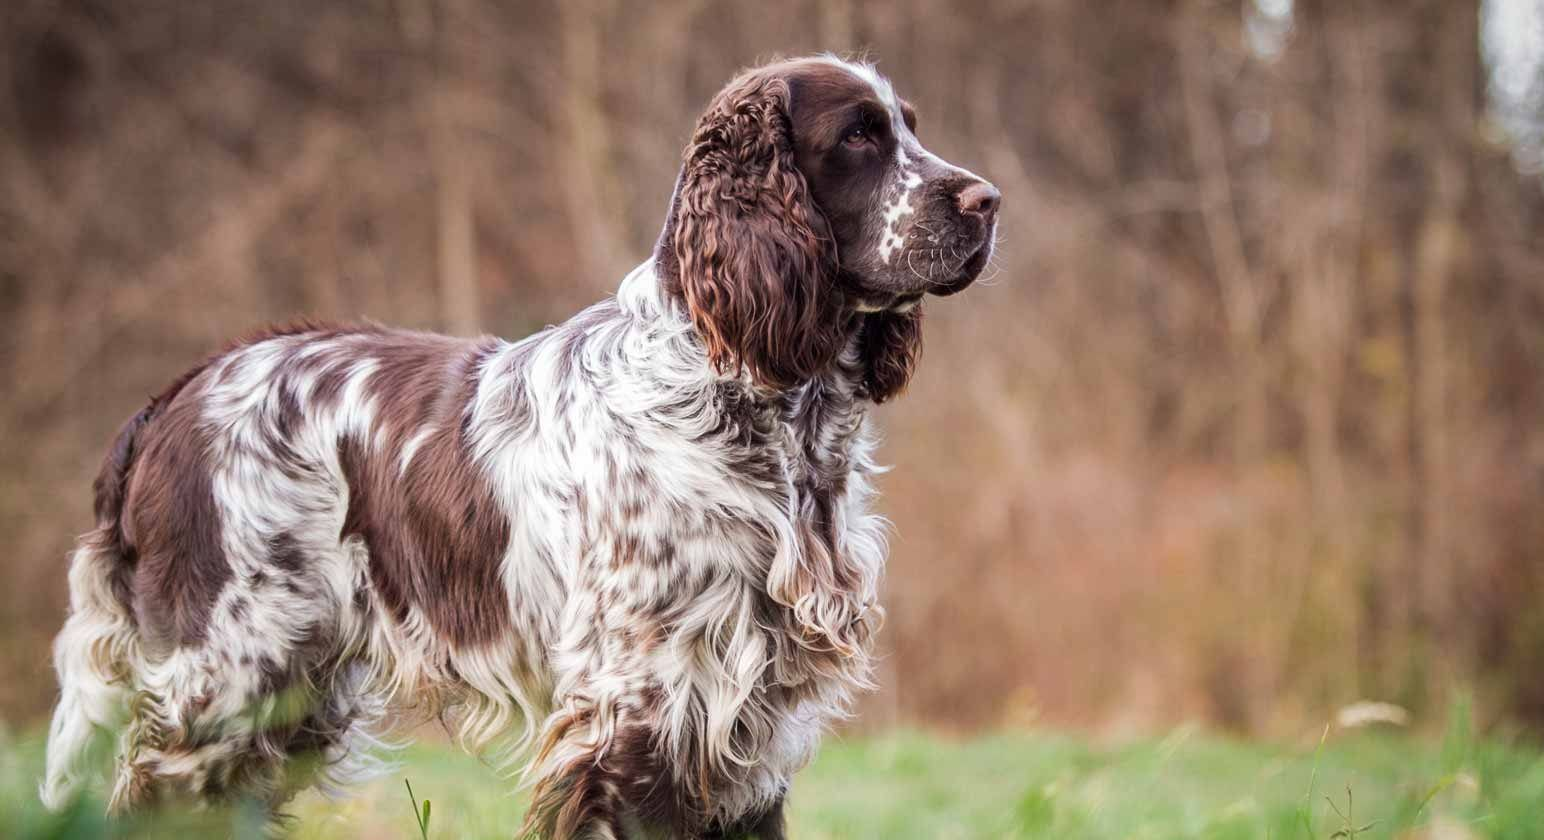 English Springer Spaniel Puppies For Sale Greenfield Puppies Spaniel Puppies For Sale Spaniel Puppies Springer Spaniel Puppies